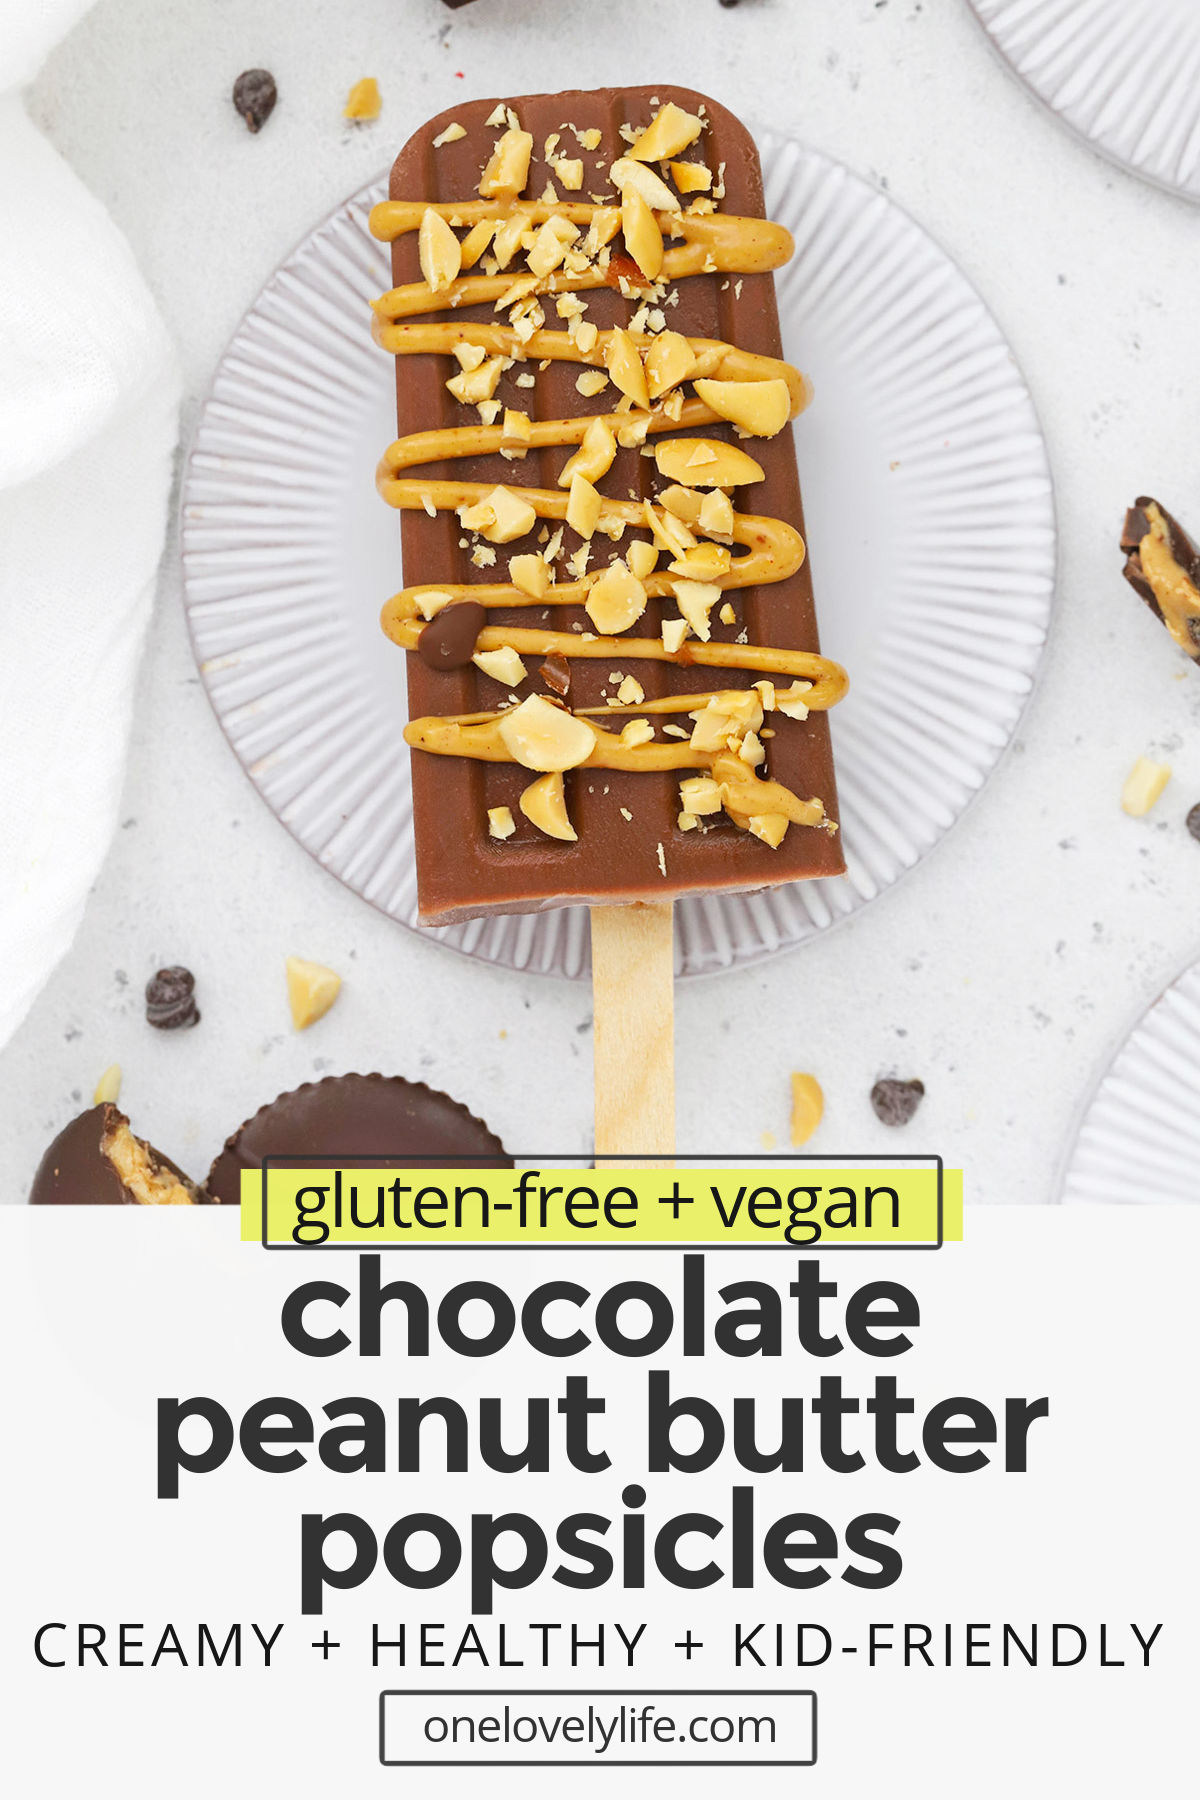 Chocolate Peanut Butter Popsicles (Vegan) - These healthy chocolate peanut butter popsicles feel like such a delicious treat! Creamy, naturally-sweetened, and totally delicious (vegan, gluten-free) // Vegan Chocolate Peanut Butter Popsicles // Chocolate Peanut Butter Banana Popsicles // Healthy Popsicle Recipe #vegan #popsicles #summerdessert #healthytreat #chocolatepeanutbutter